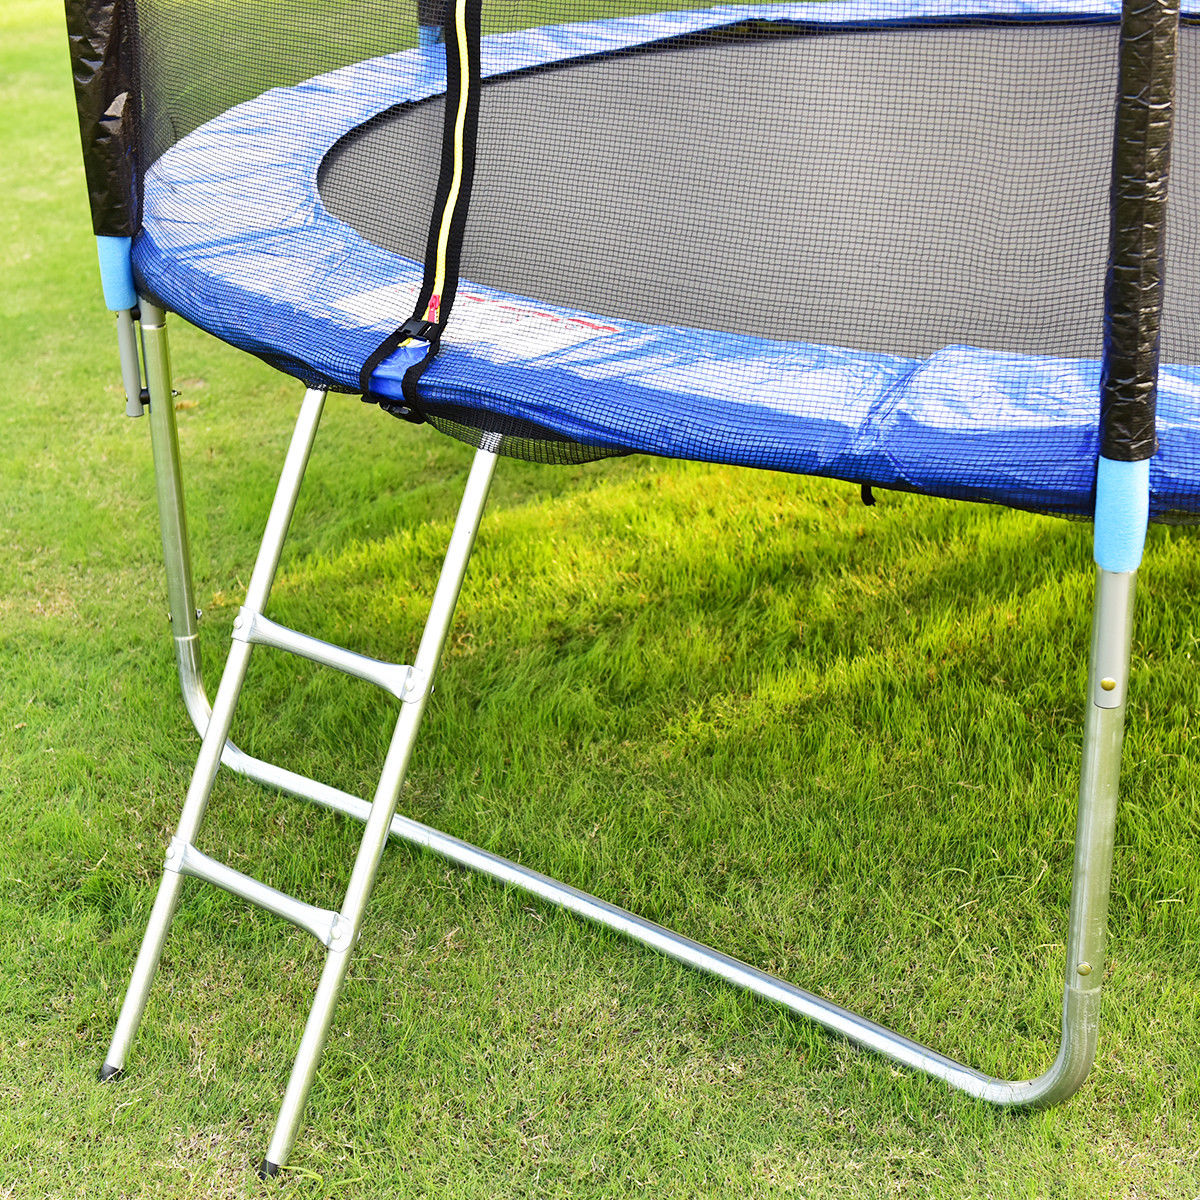 Gymax 10 FT Trampoline Combo Bounce Jump Safety Enclosure Net W/Spring Pad Ladder - image 9 of 10